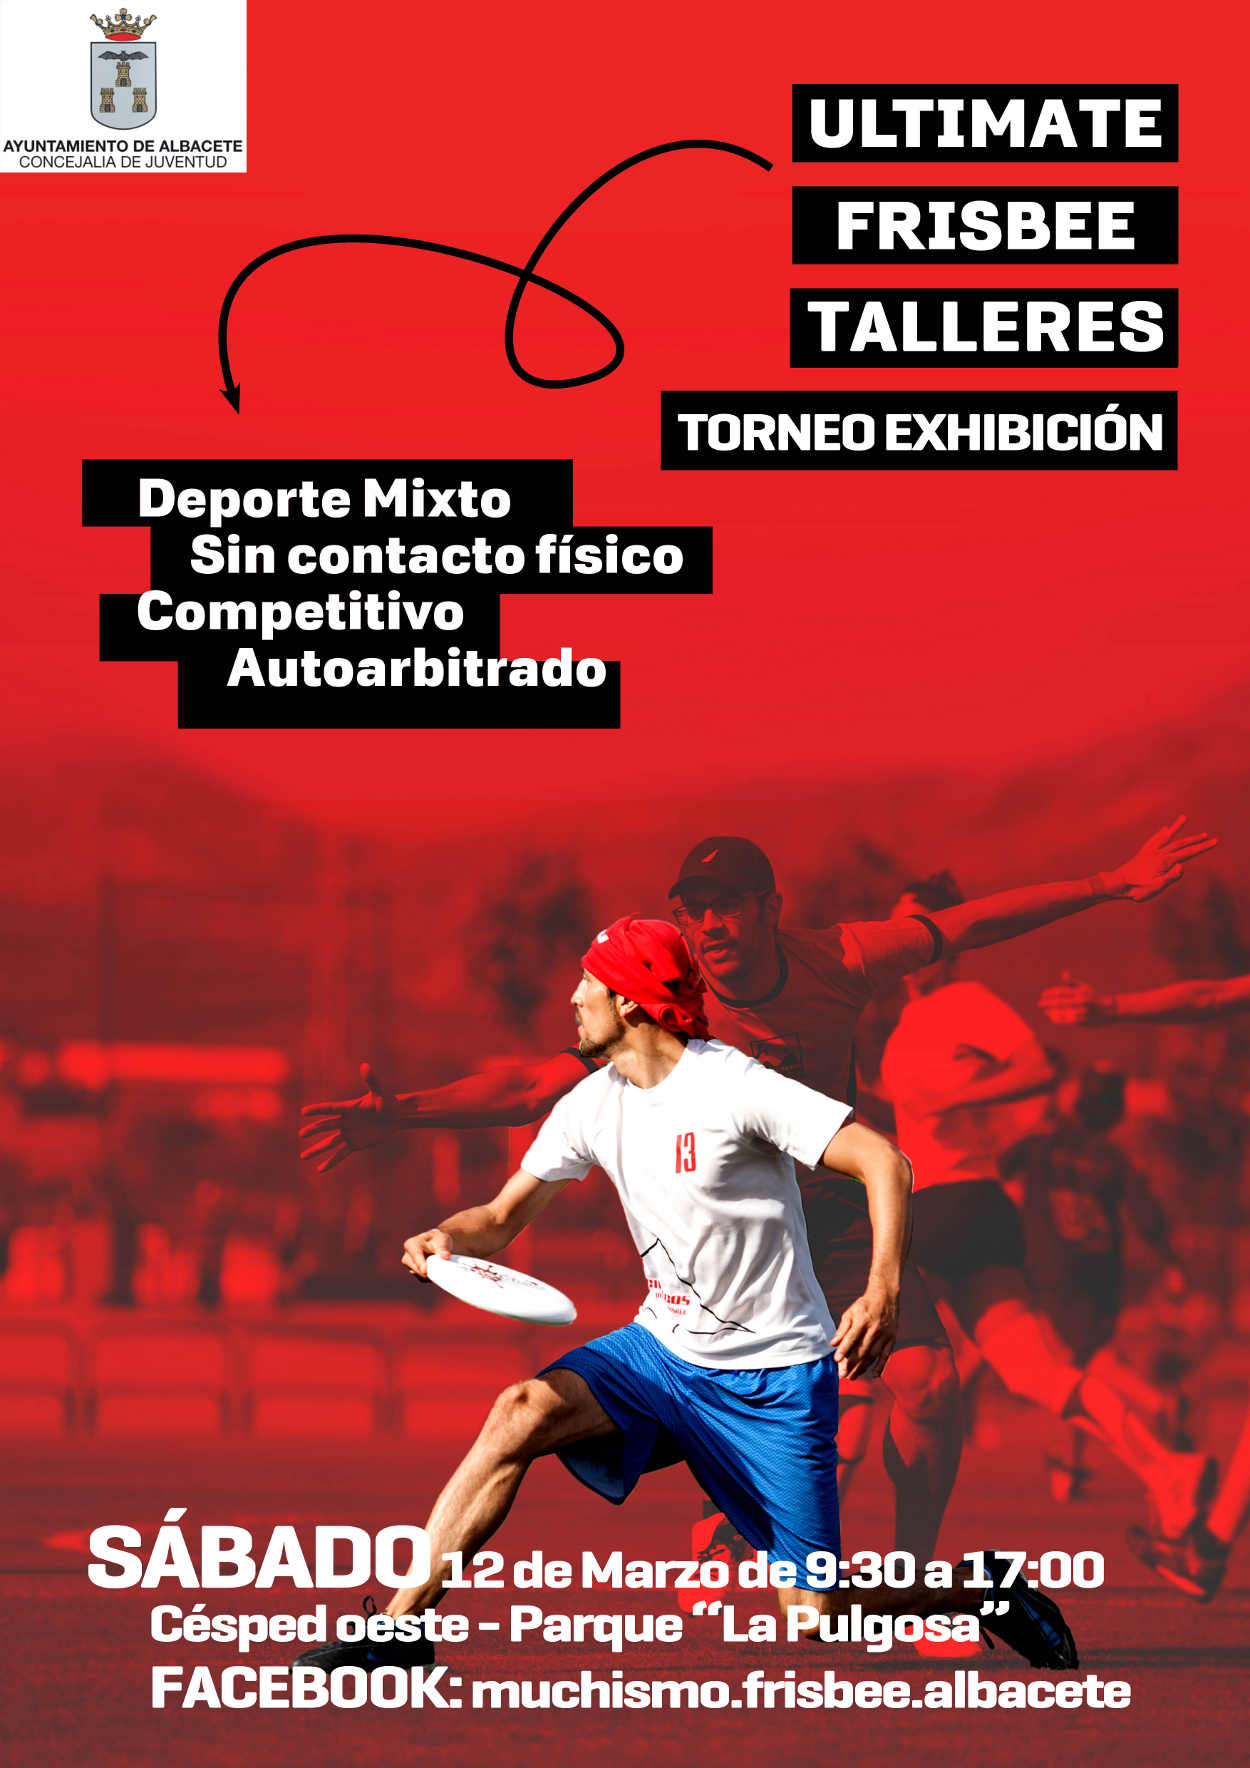 Cartel del Ultimate Frisbee